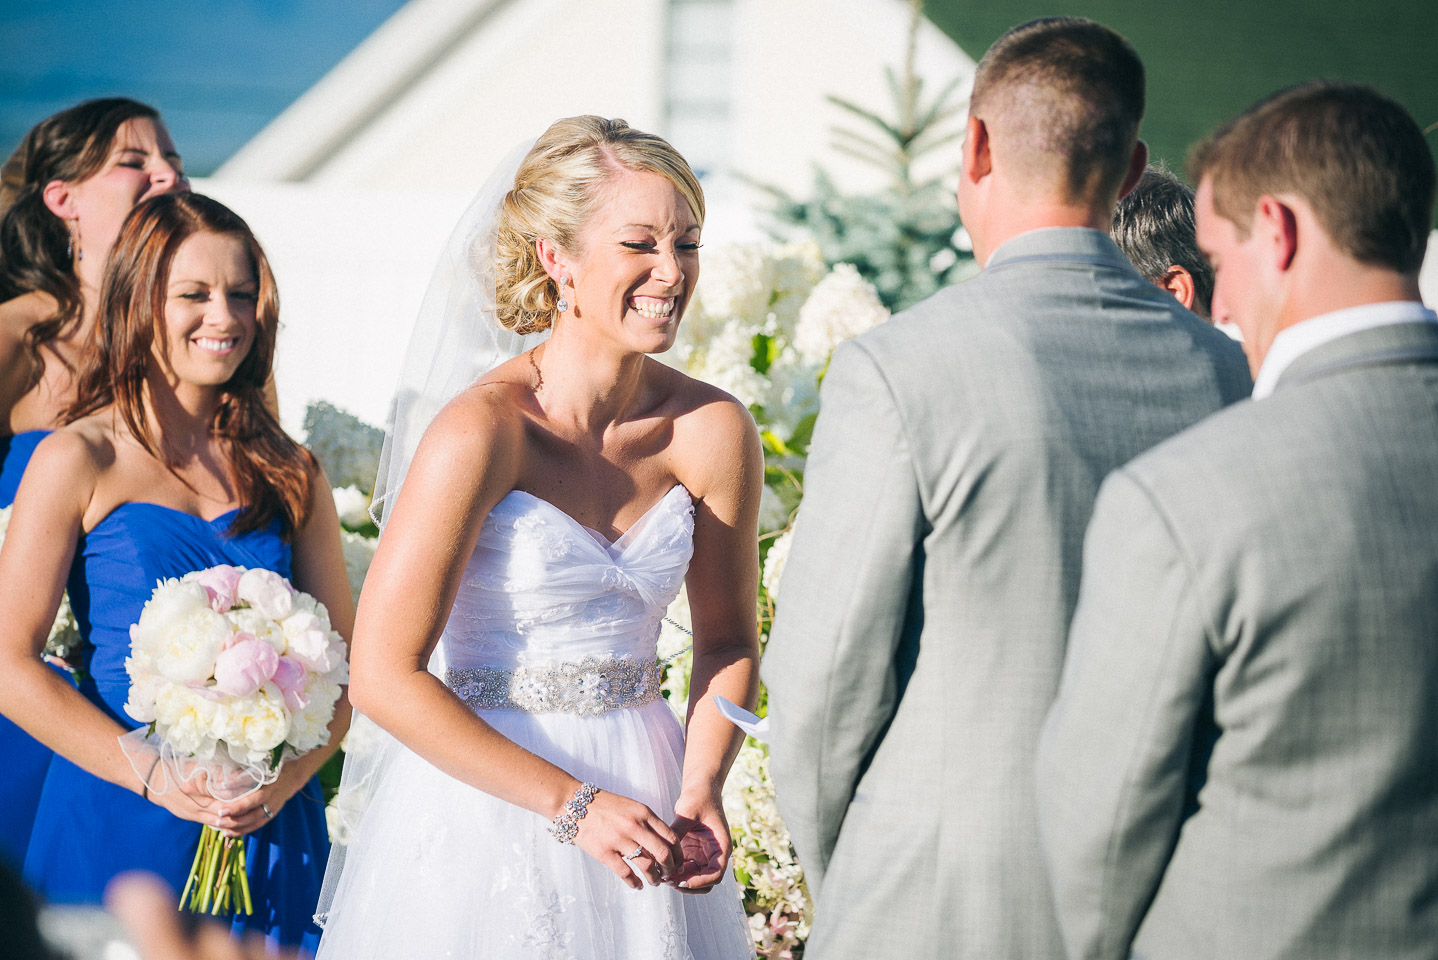 NH Wedding Photography: bride looking at groom